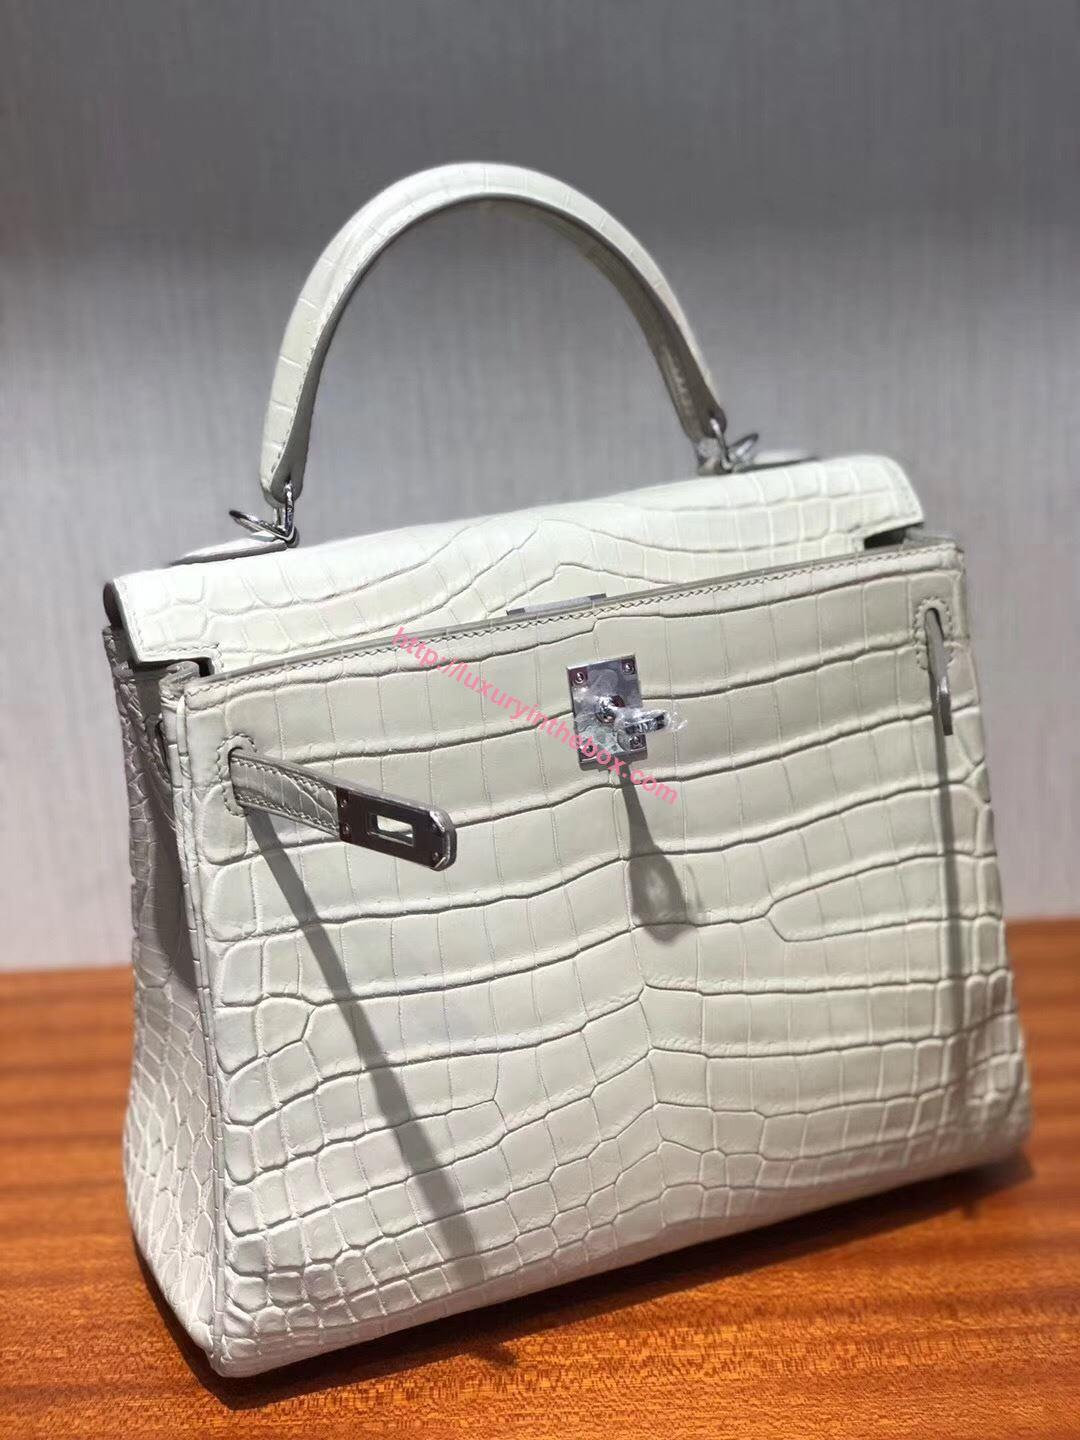 Picture of Hermes Kelly 25cm  Matte Crocodile leather Tote Bag Milk White  Silver